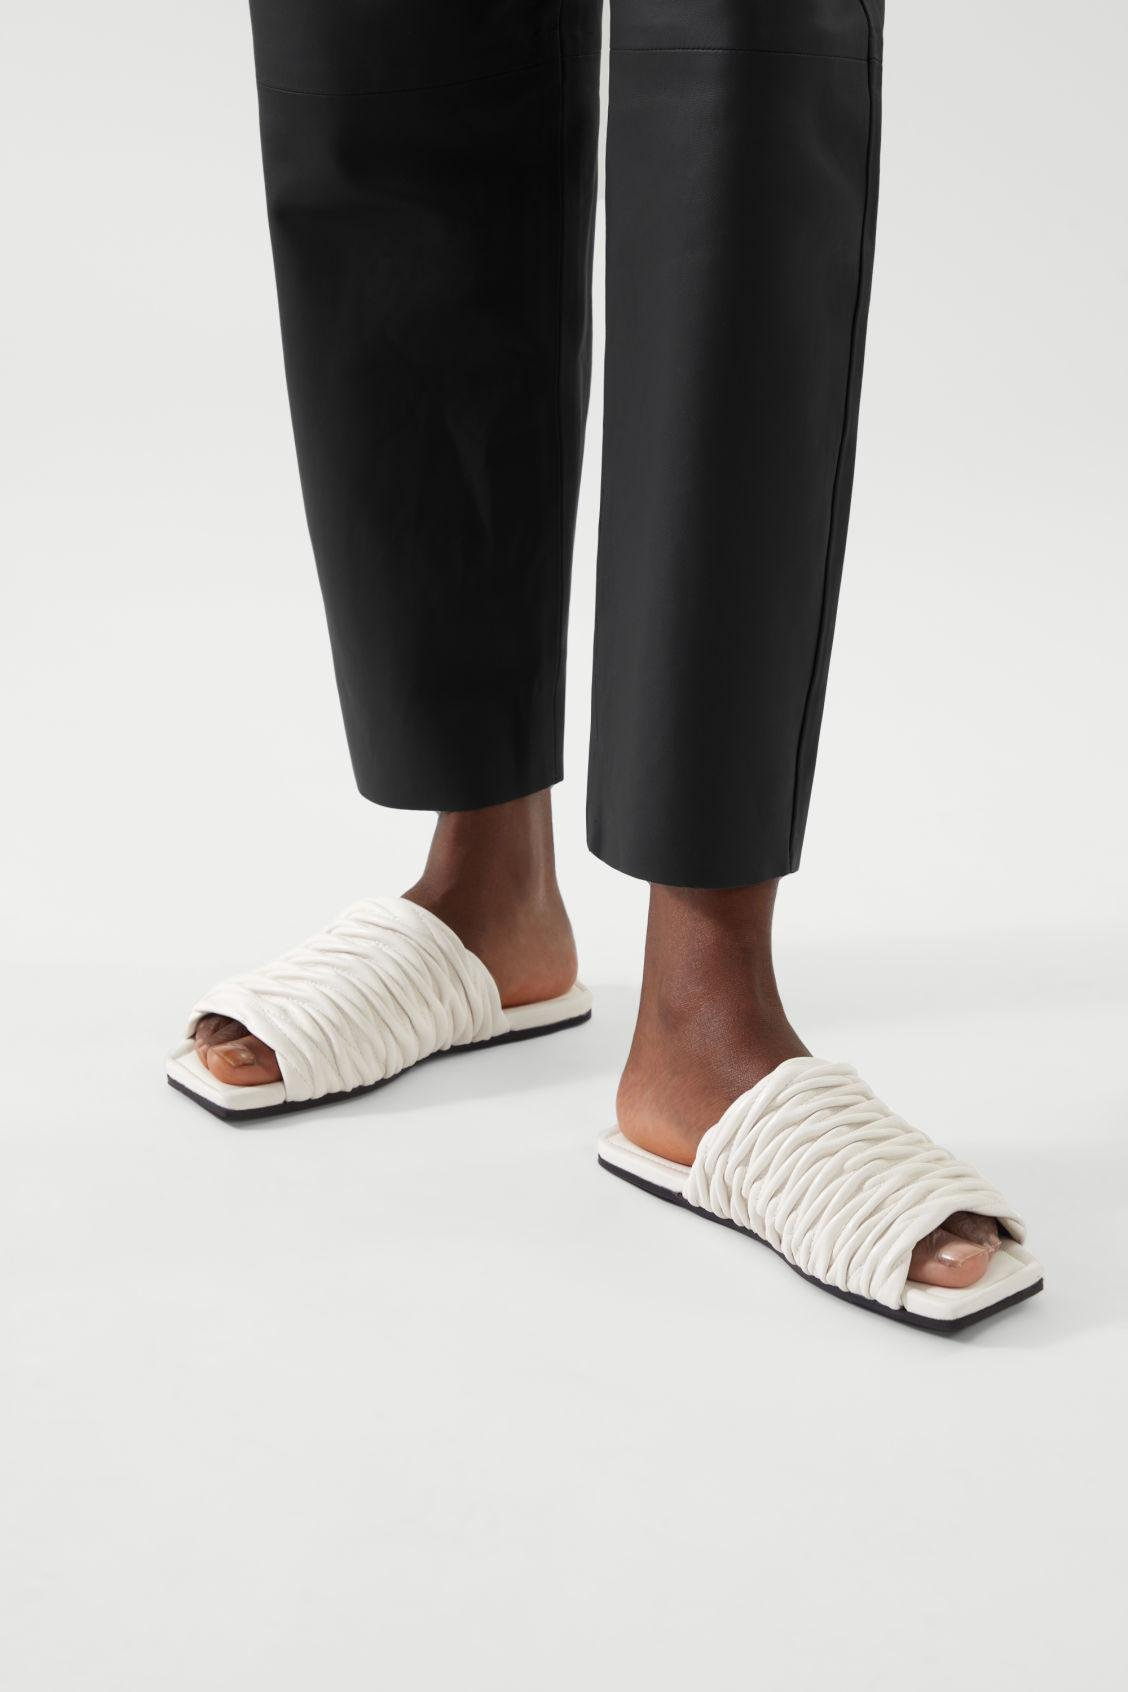 LEATHER SQUARE-TOE SANDALS 5